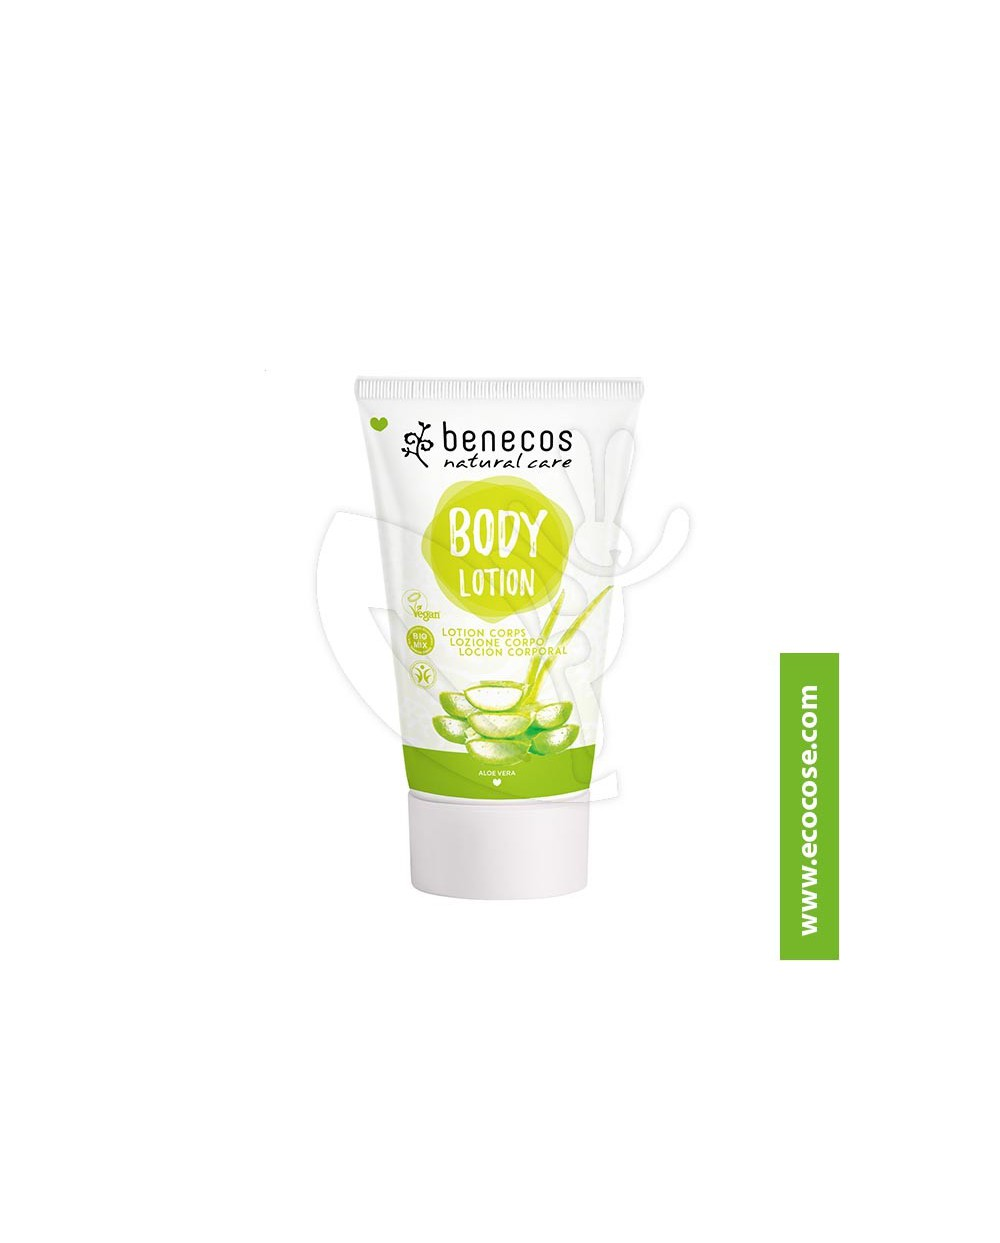 Benecos - Natural Care - Body Lotion - Aloe Vera